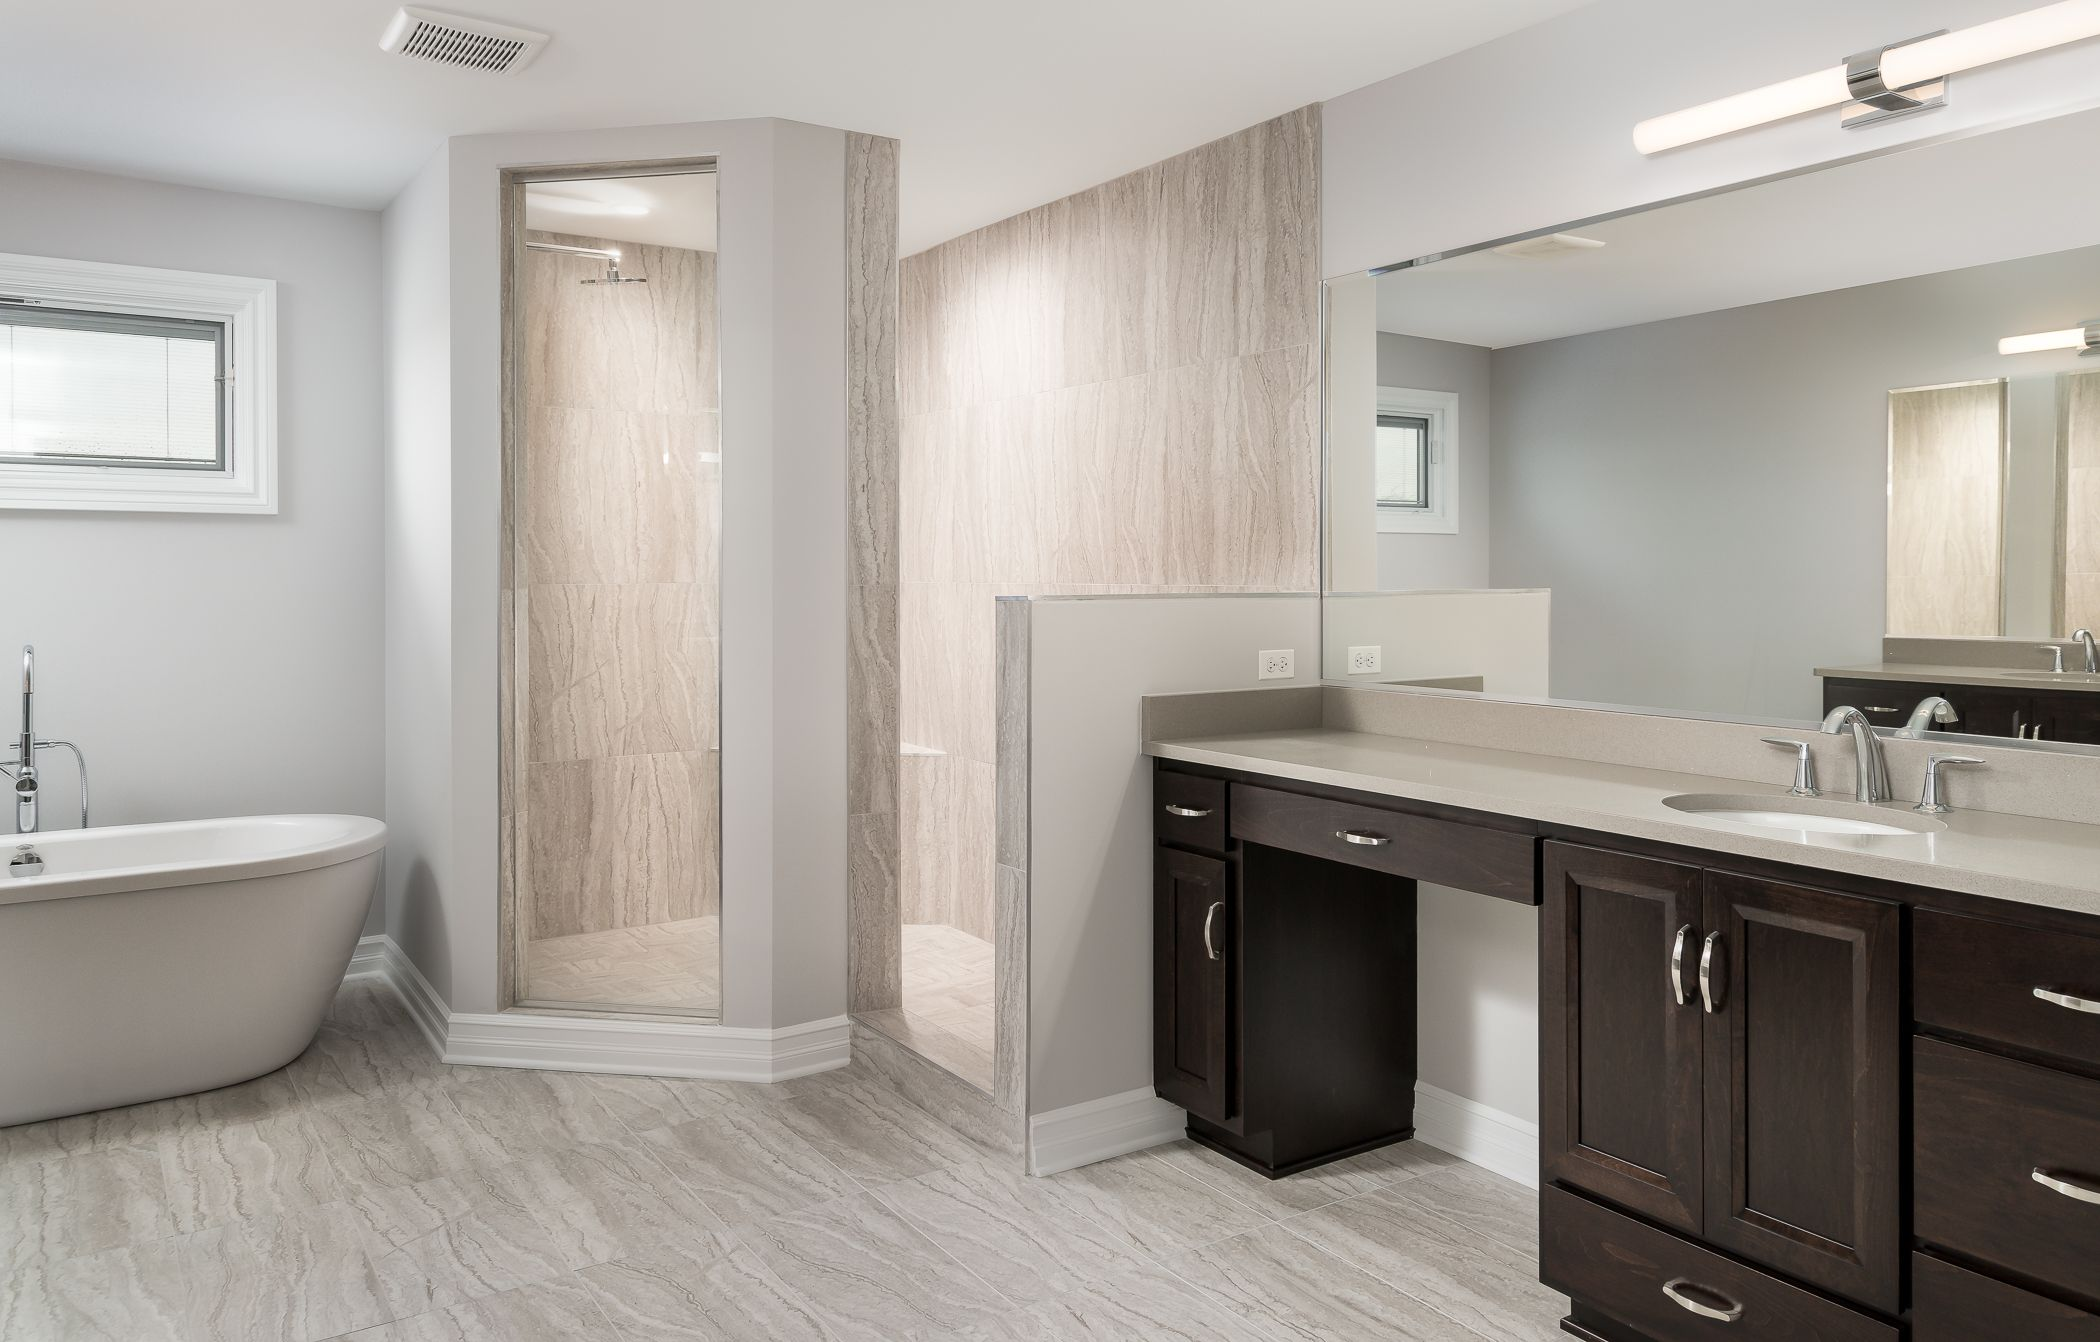 Master Bathroom With A Walk In Shower With Glass Panel And